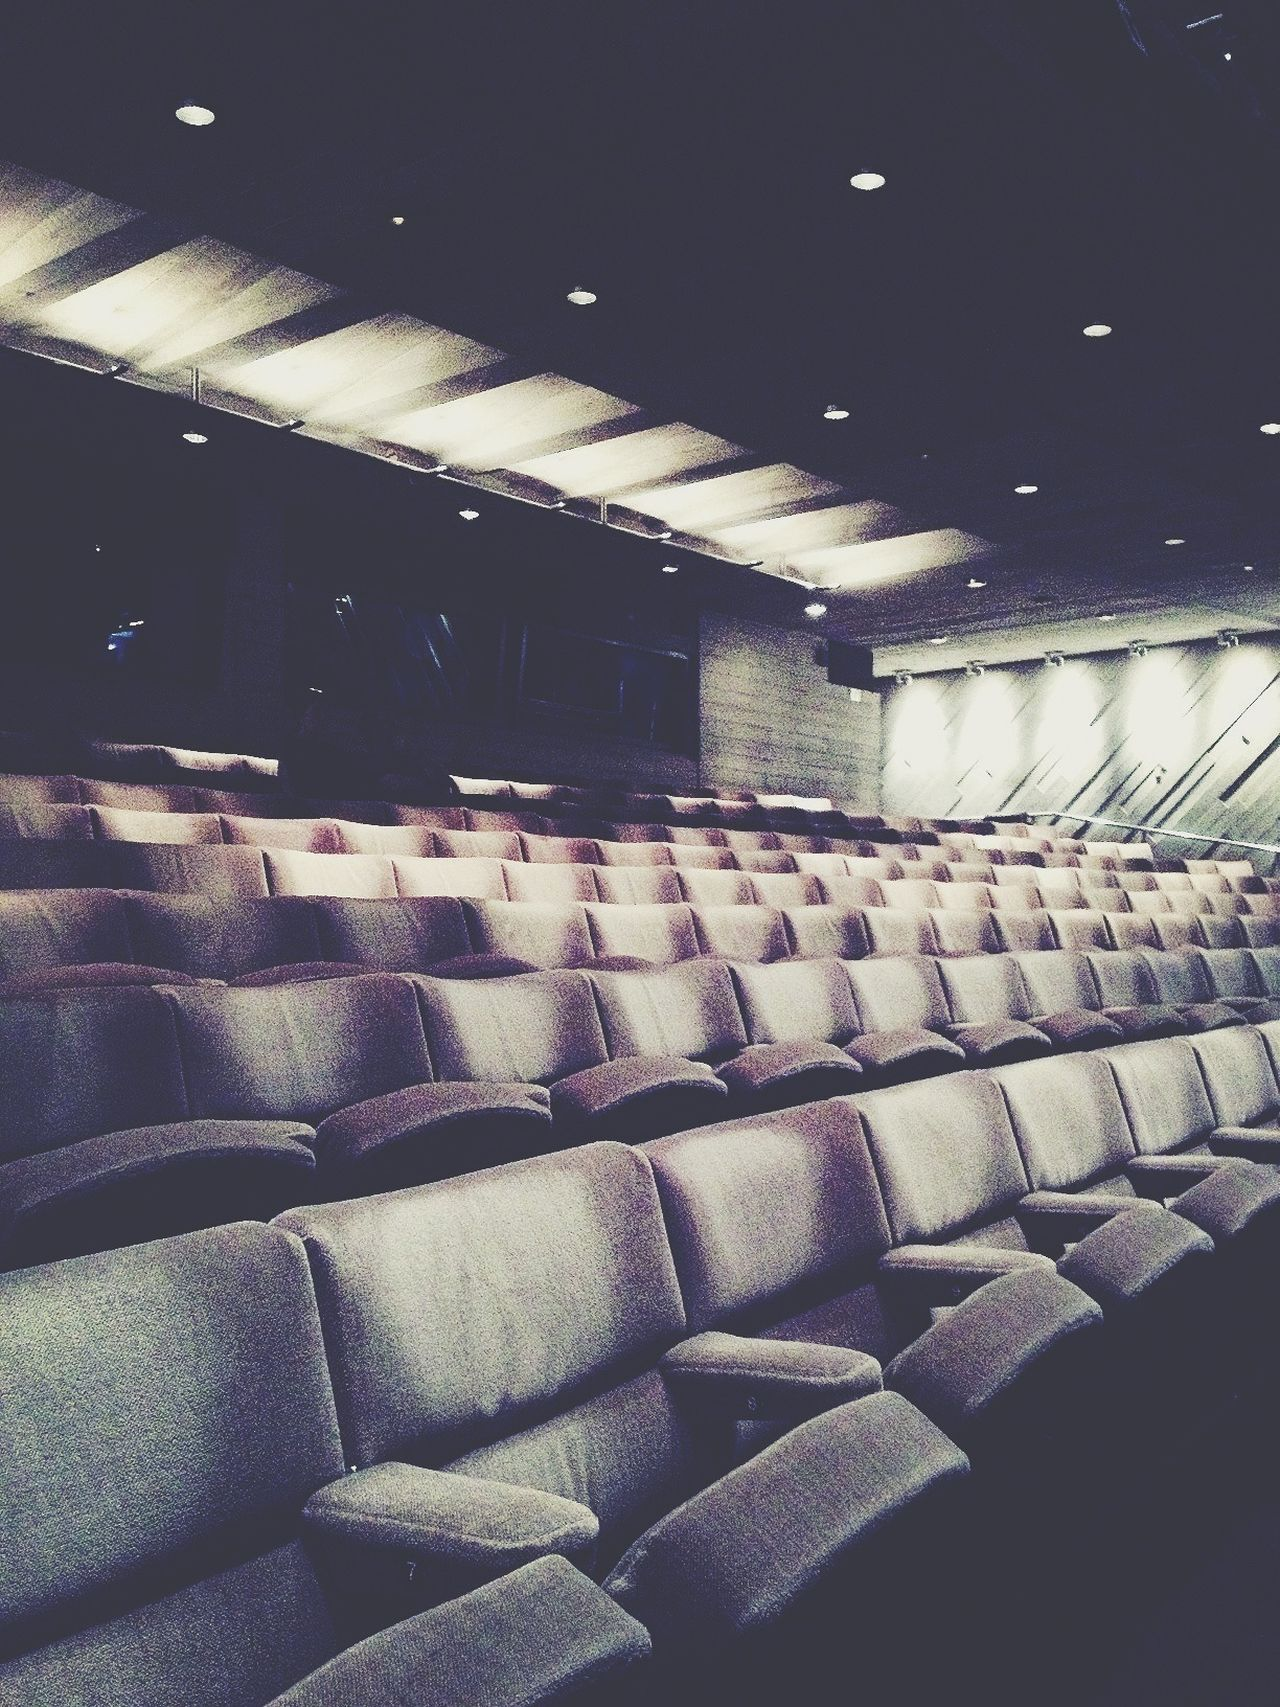 Beautiful stock photos of cinema, Absence, Chairs, Cinema, City of London